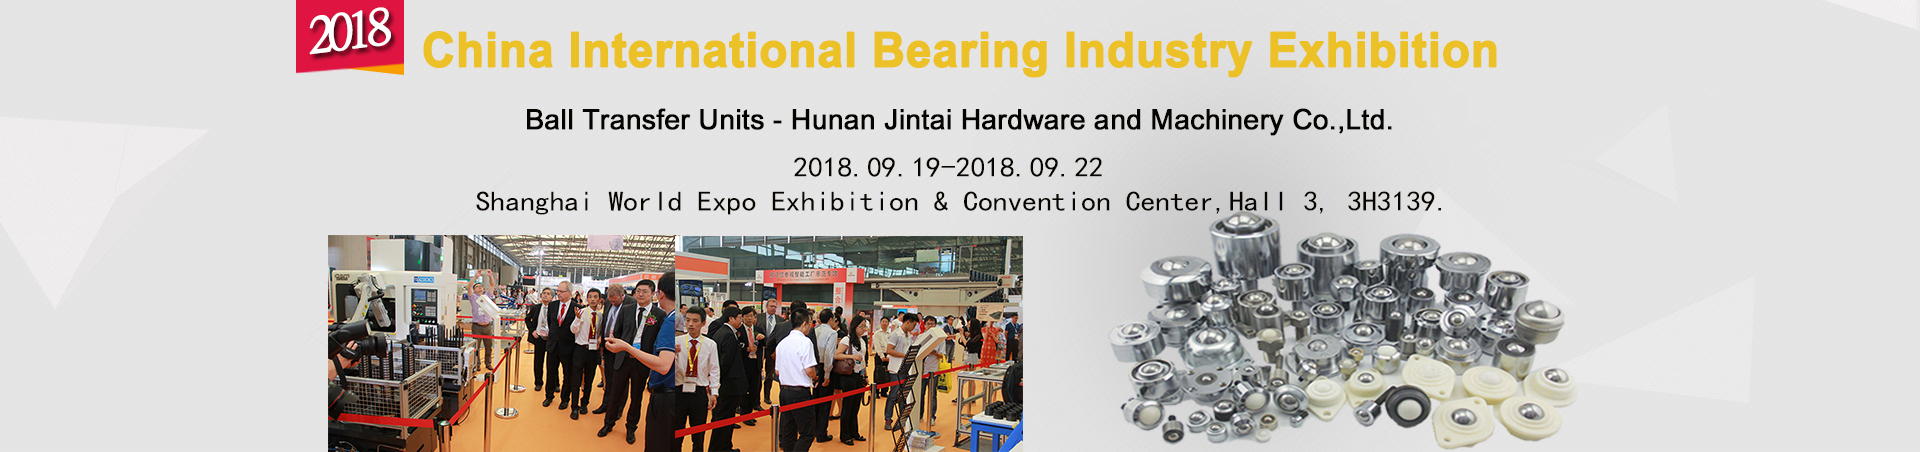 China International Bearing and Industry Exhibition 2018